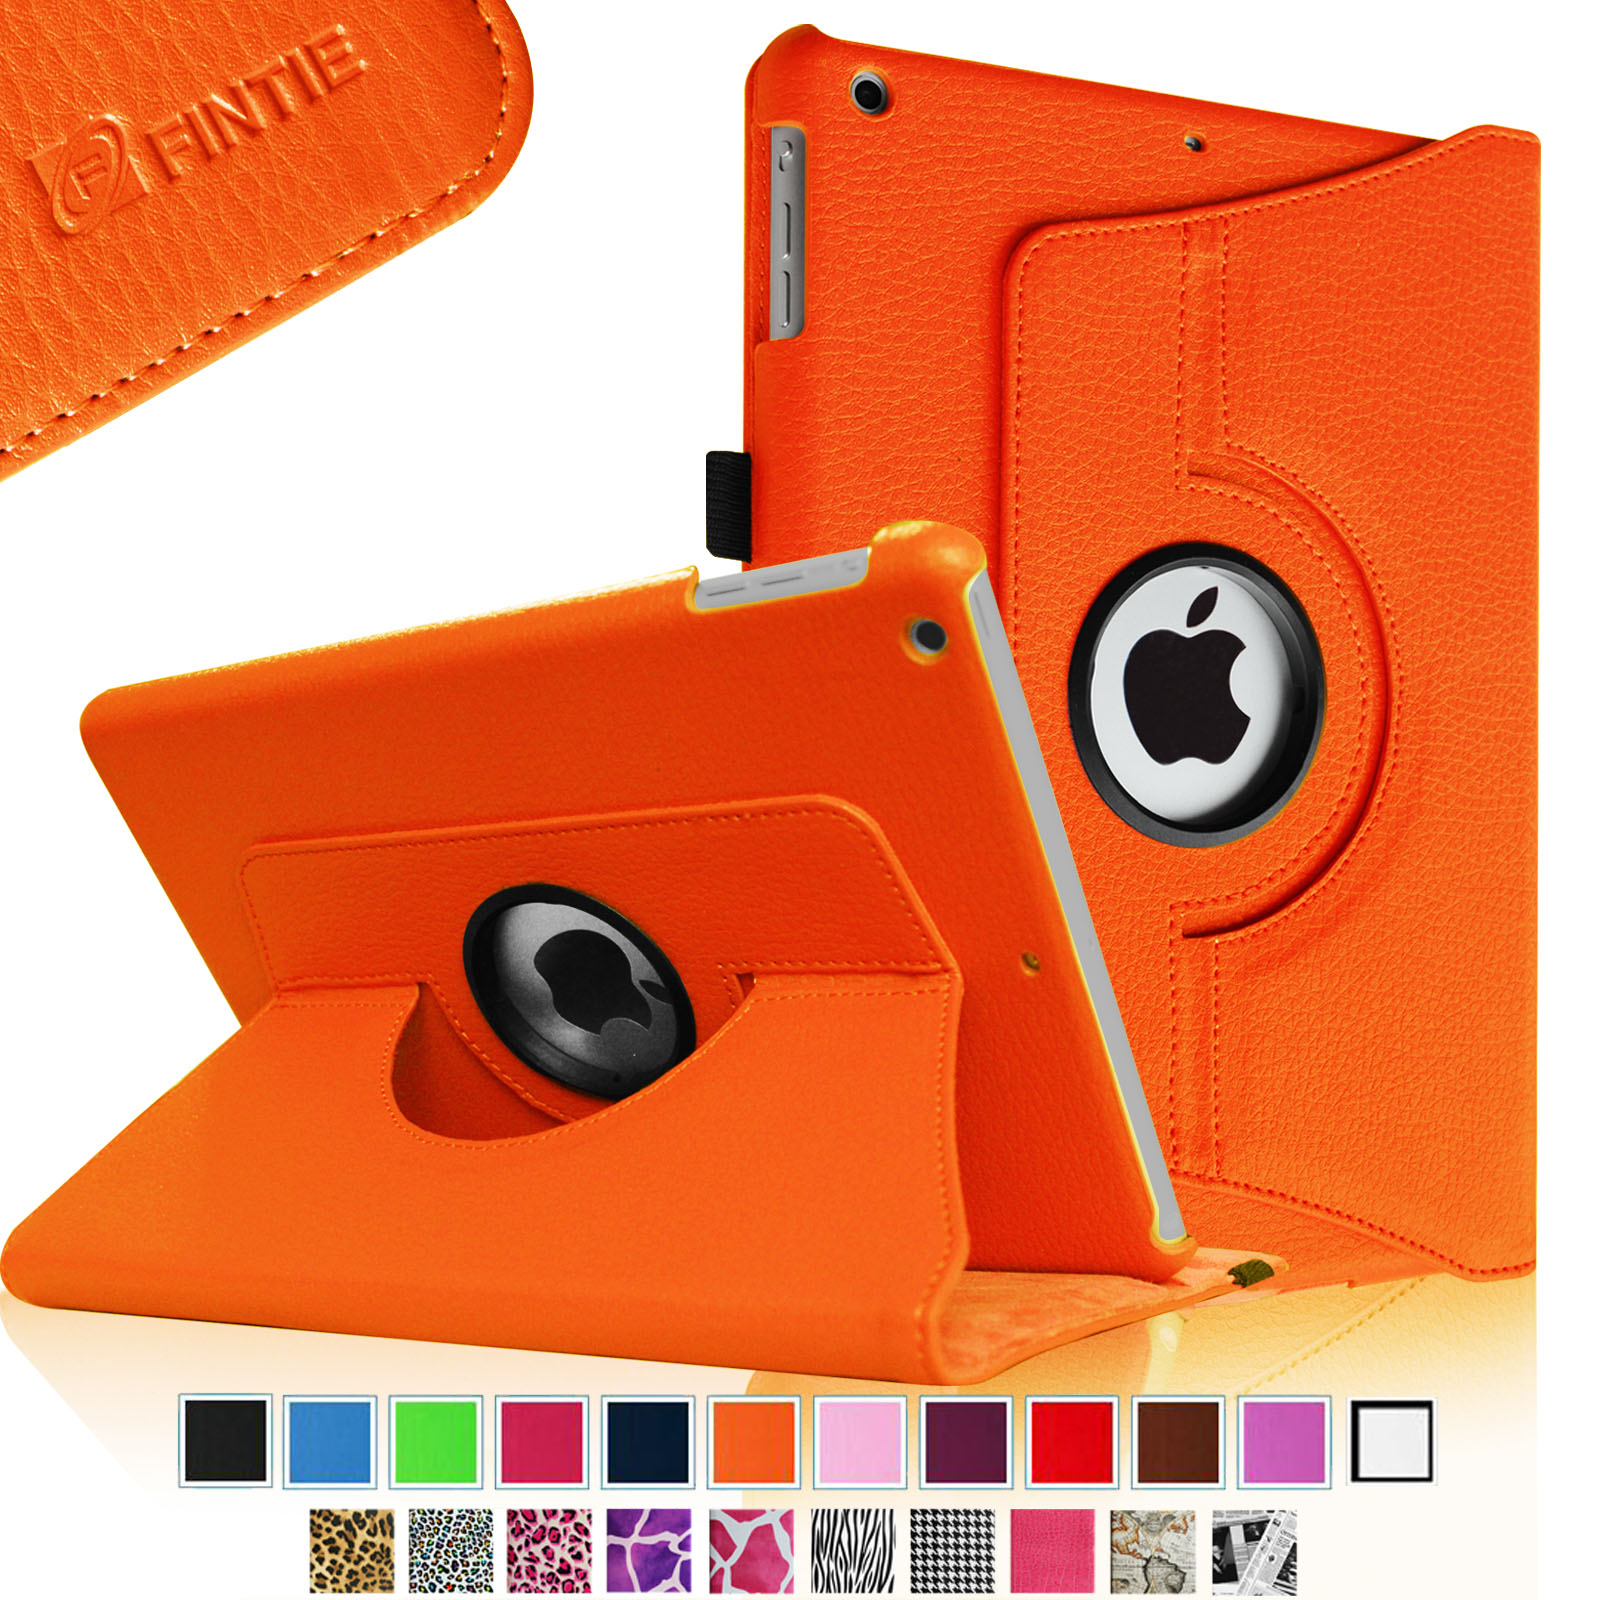 Fintie iPad Air Multiple Angles Stand Case Cover with Auto Sleep Wake, Orange